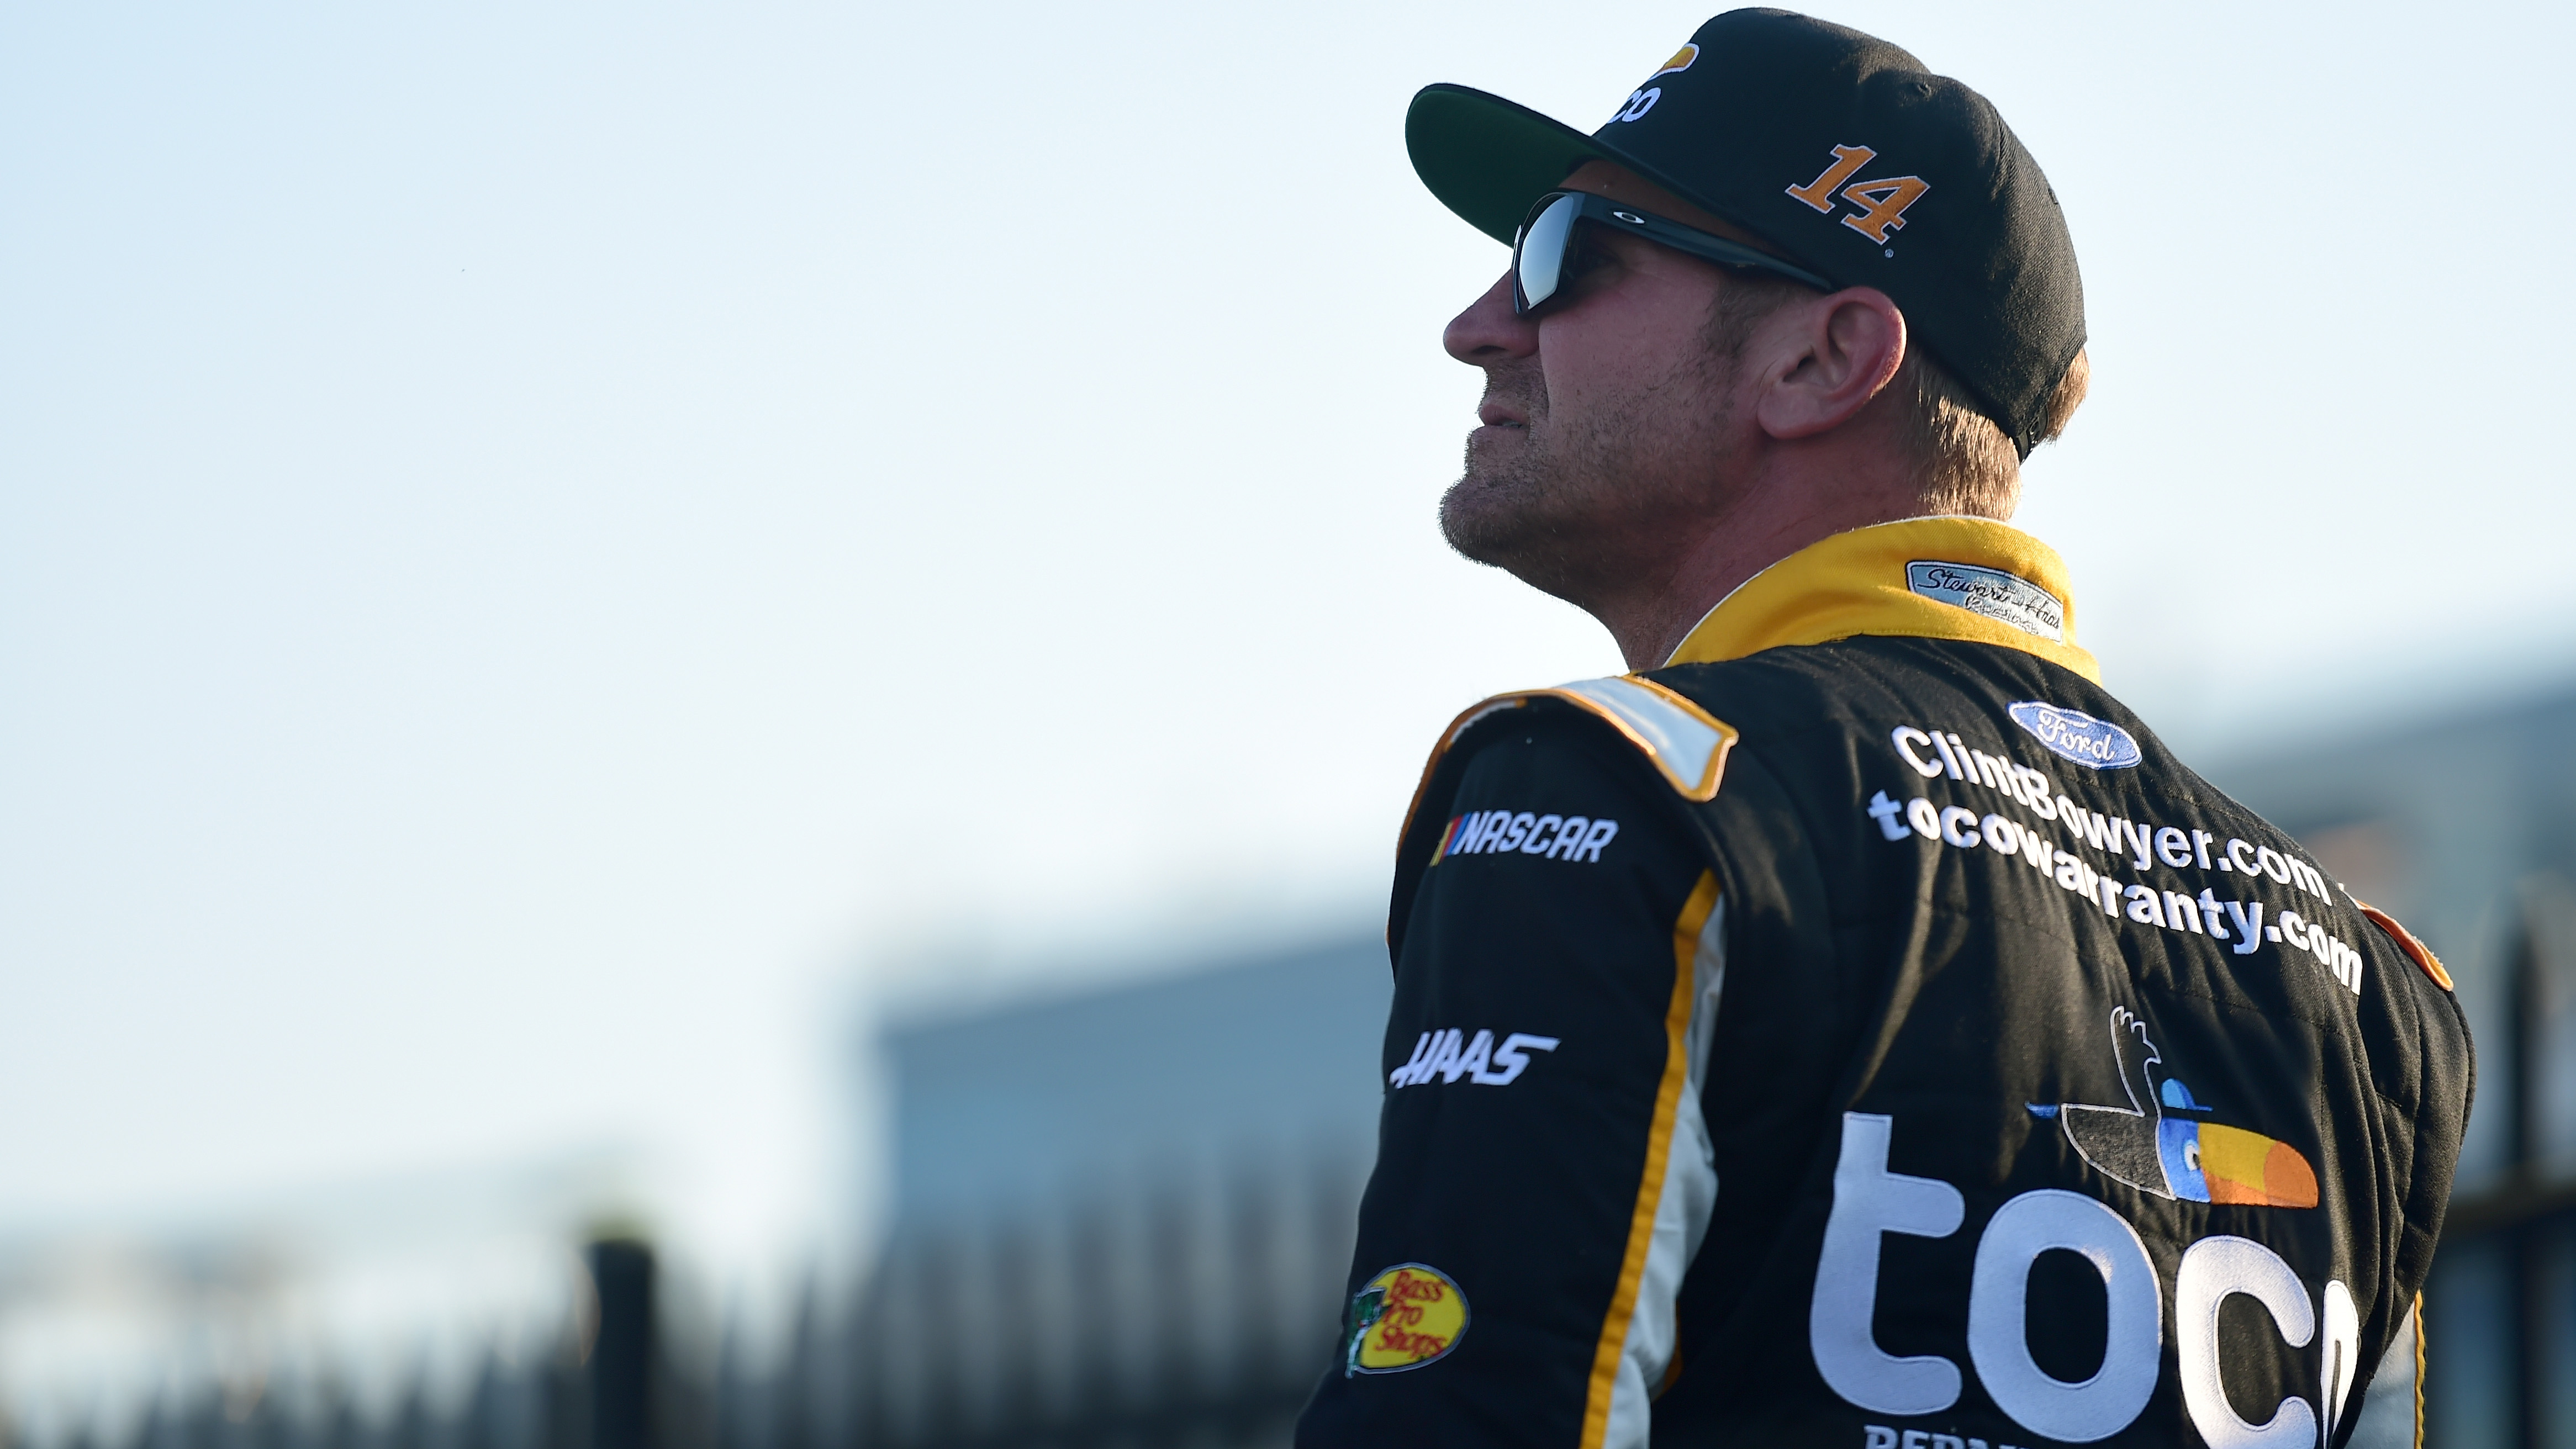 Gold Star Motors >> Ryan Newman, Clint Bowyer explain what led to fight at ...